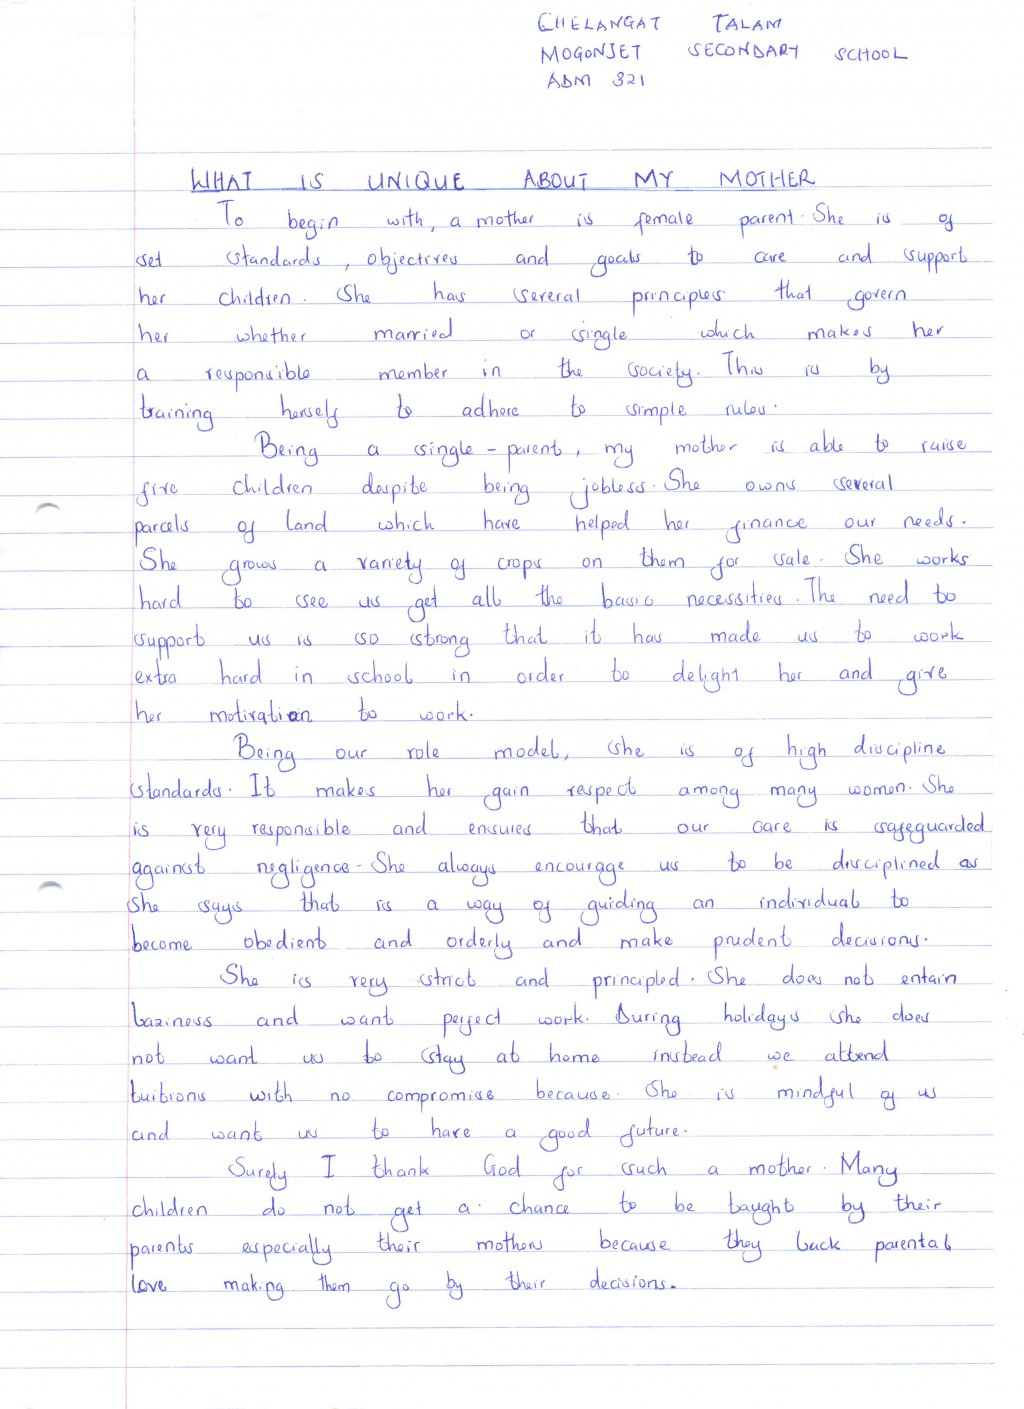 016 Essay Example Inspirational Breathtaking Essays About Life And Struggles For Youth Large